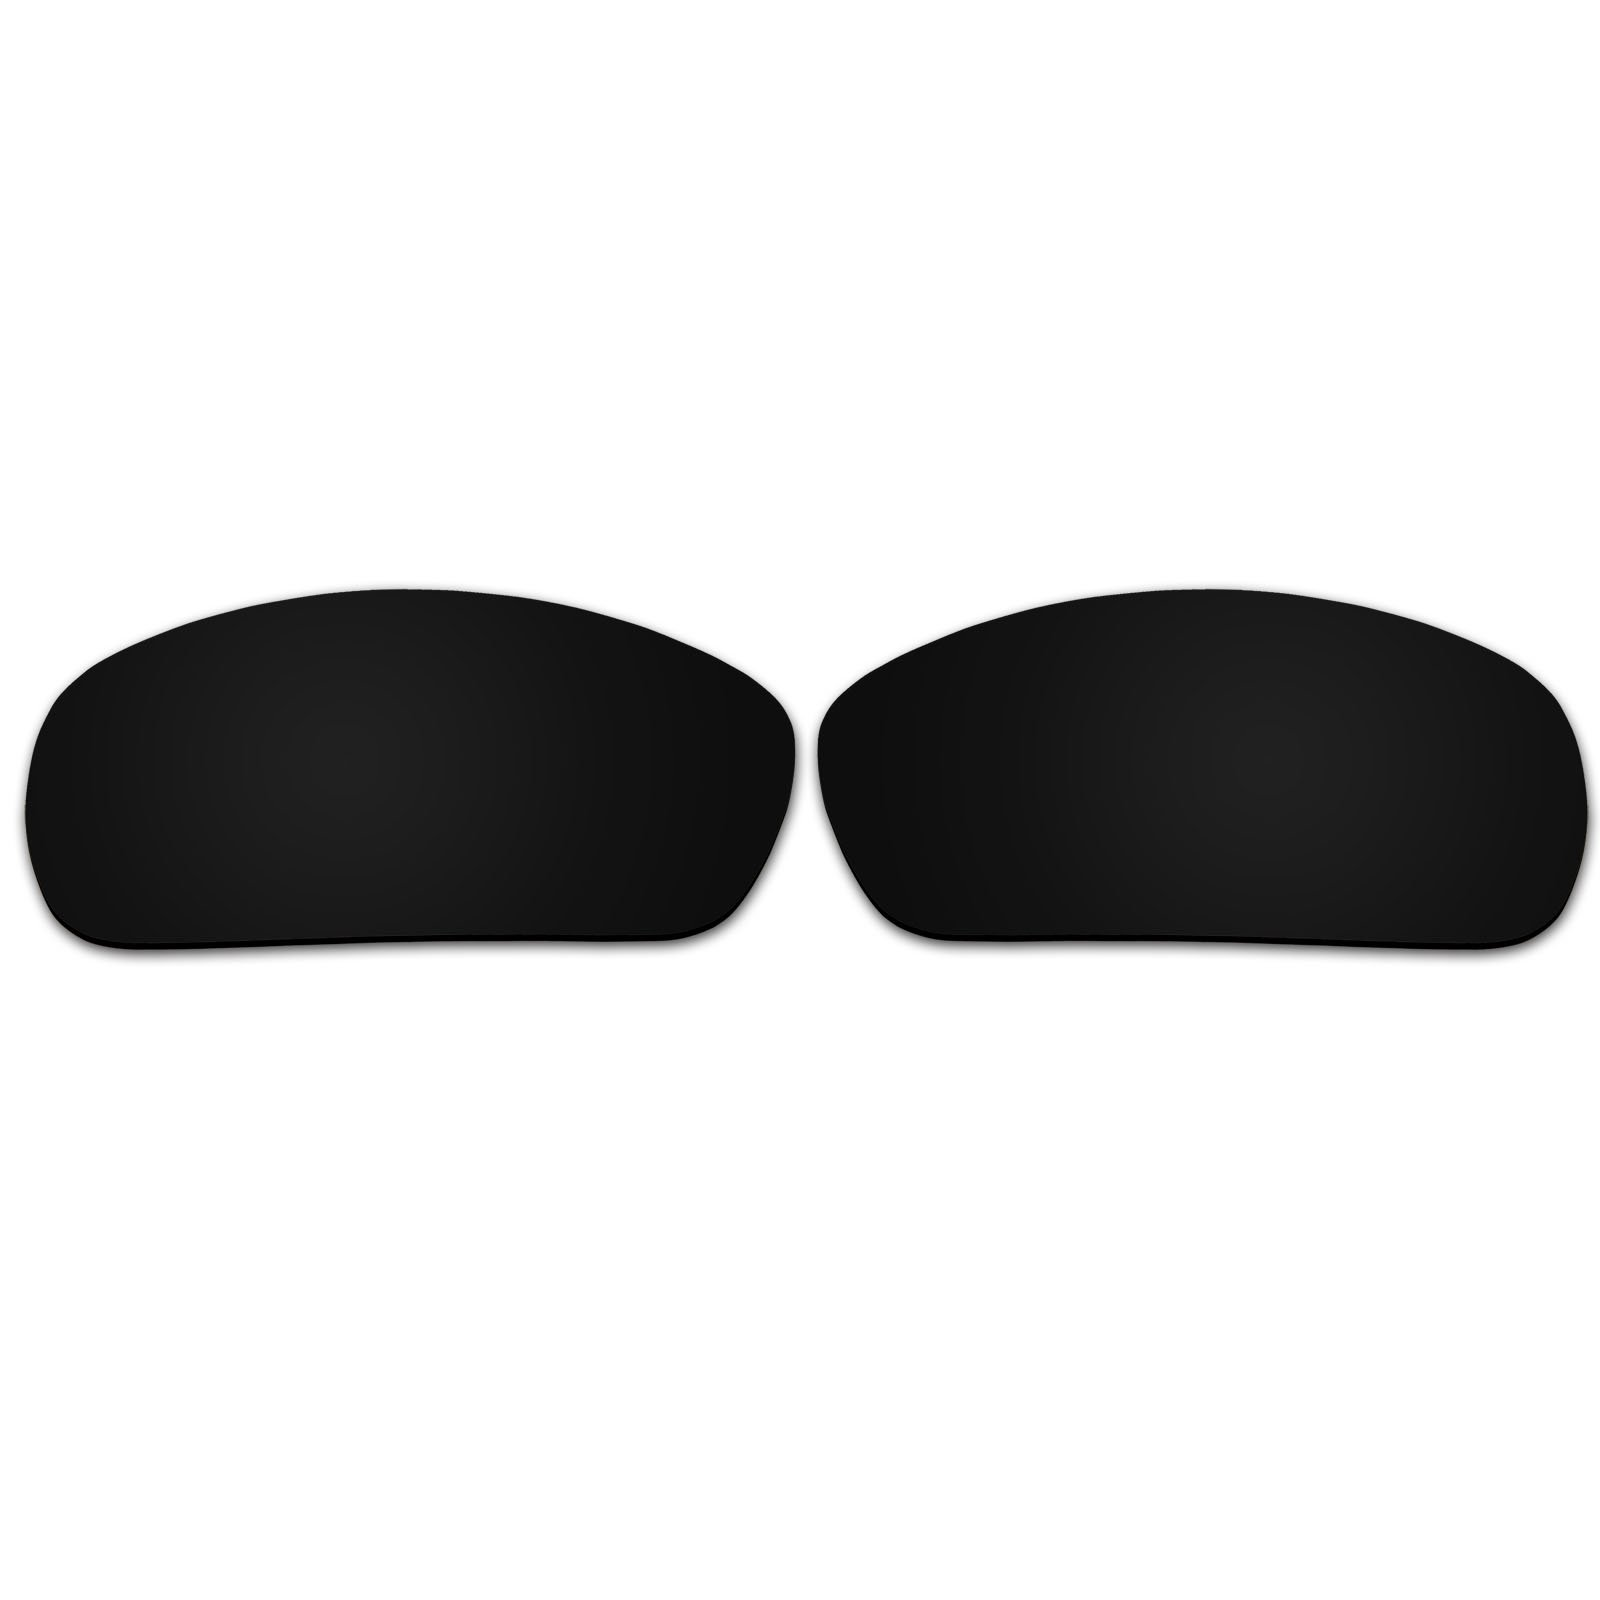 Polarized Replacement Lenses For Spy Optic Bounty Sunglasses Black by oGeee